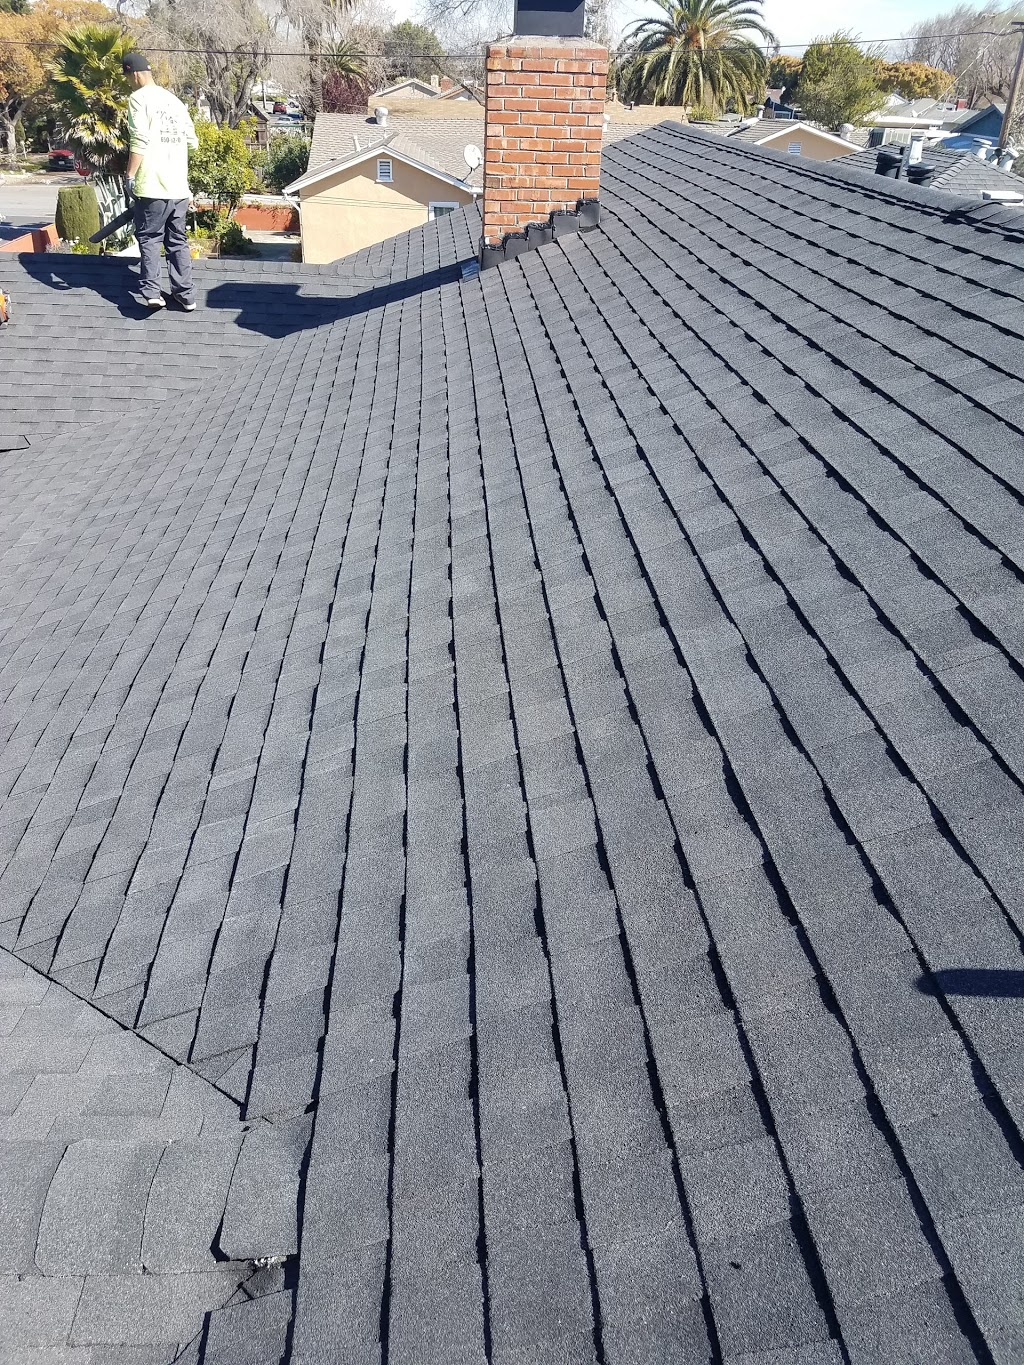 Mike McCurdy Roofing Inc. - roofing contractor  | Photo 2 of 10 | Address: 371 Shaw Rd, South San Francisco, CA 94080, USA | Phone: (650) 952-0233